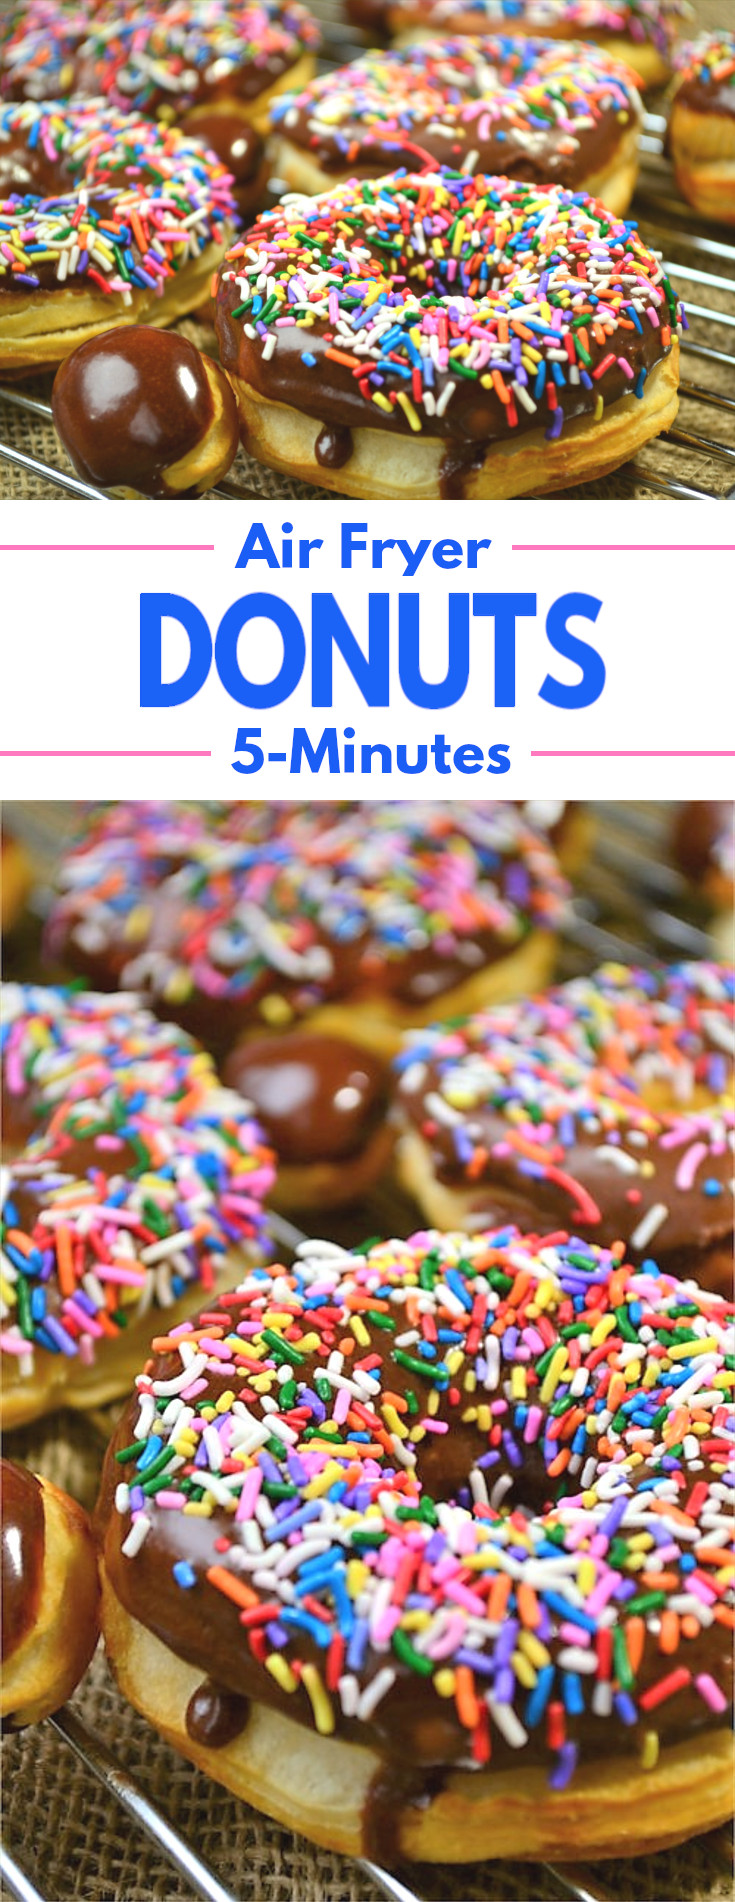 5 Minute Air Fryer Donuts - A simple recipe for a favorite treat that can be made in just 5 minutes.